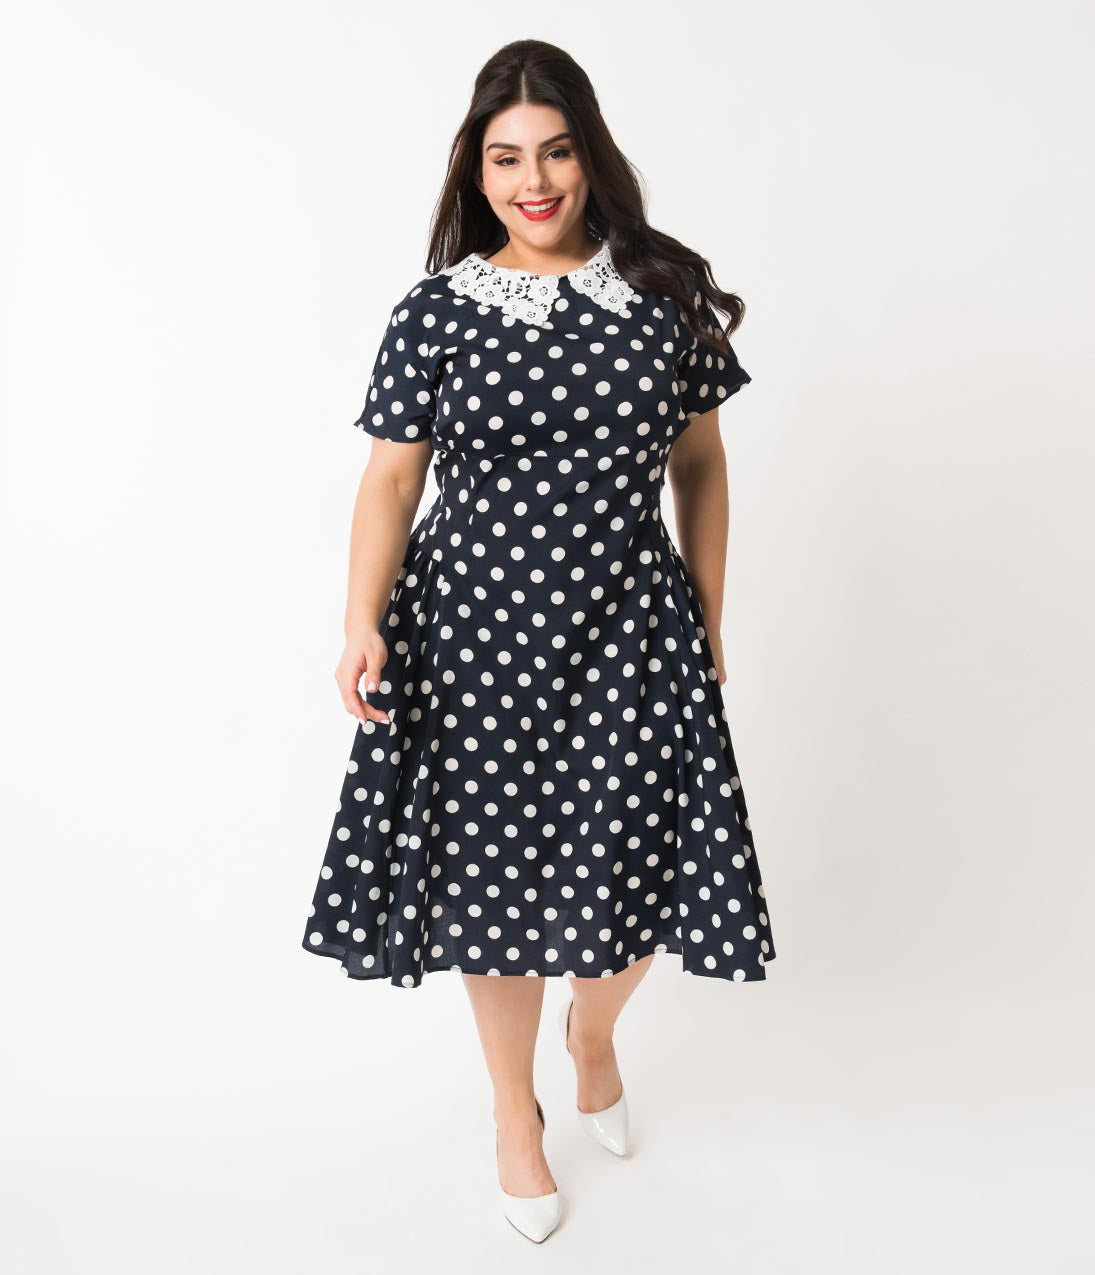 Vintage Tea Dresses, Floral Tea Dresses, Tea Length Dresses Unique Vintage Plus Size 1940S Navy  White Polka Dot Lace Collar Margie Dress $88.00 AT vintagedancer.com